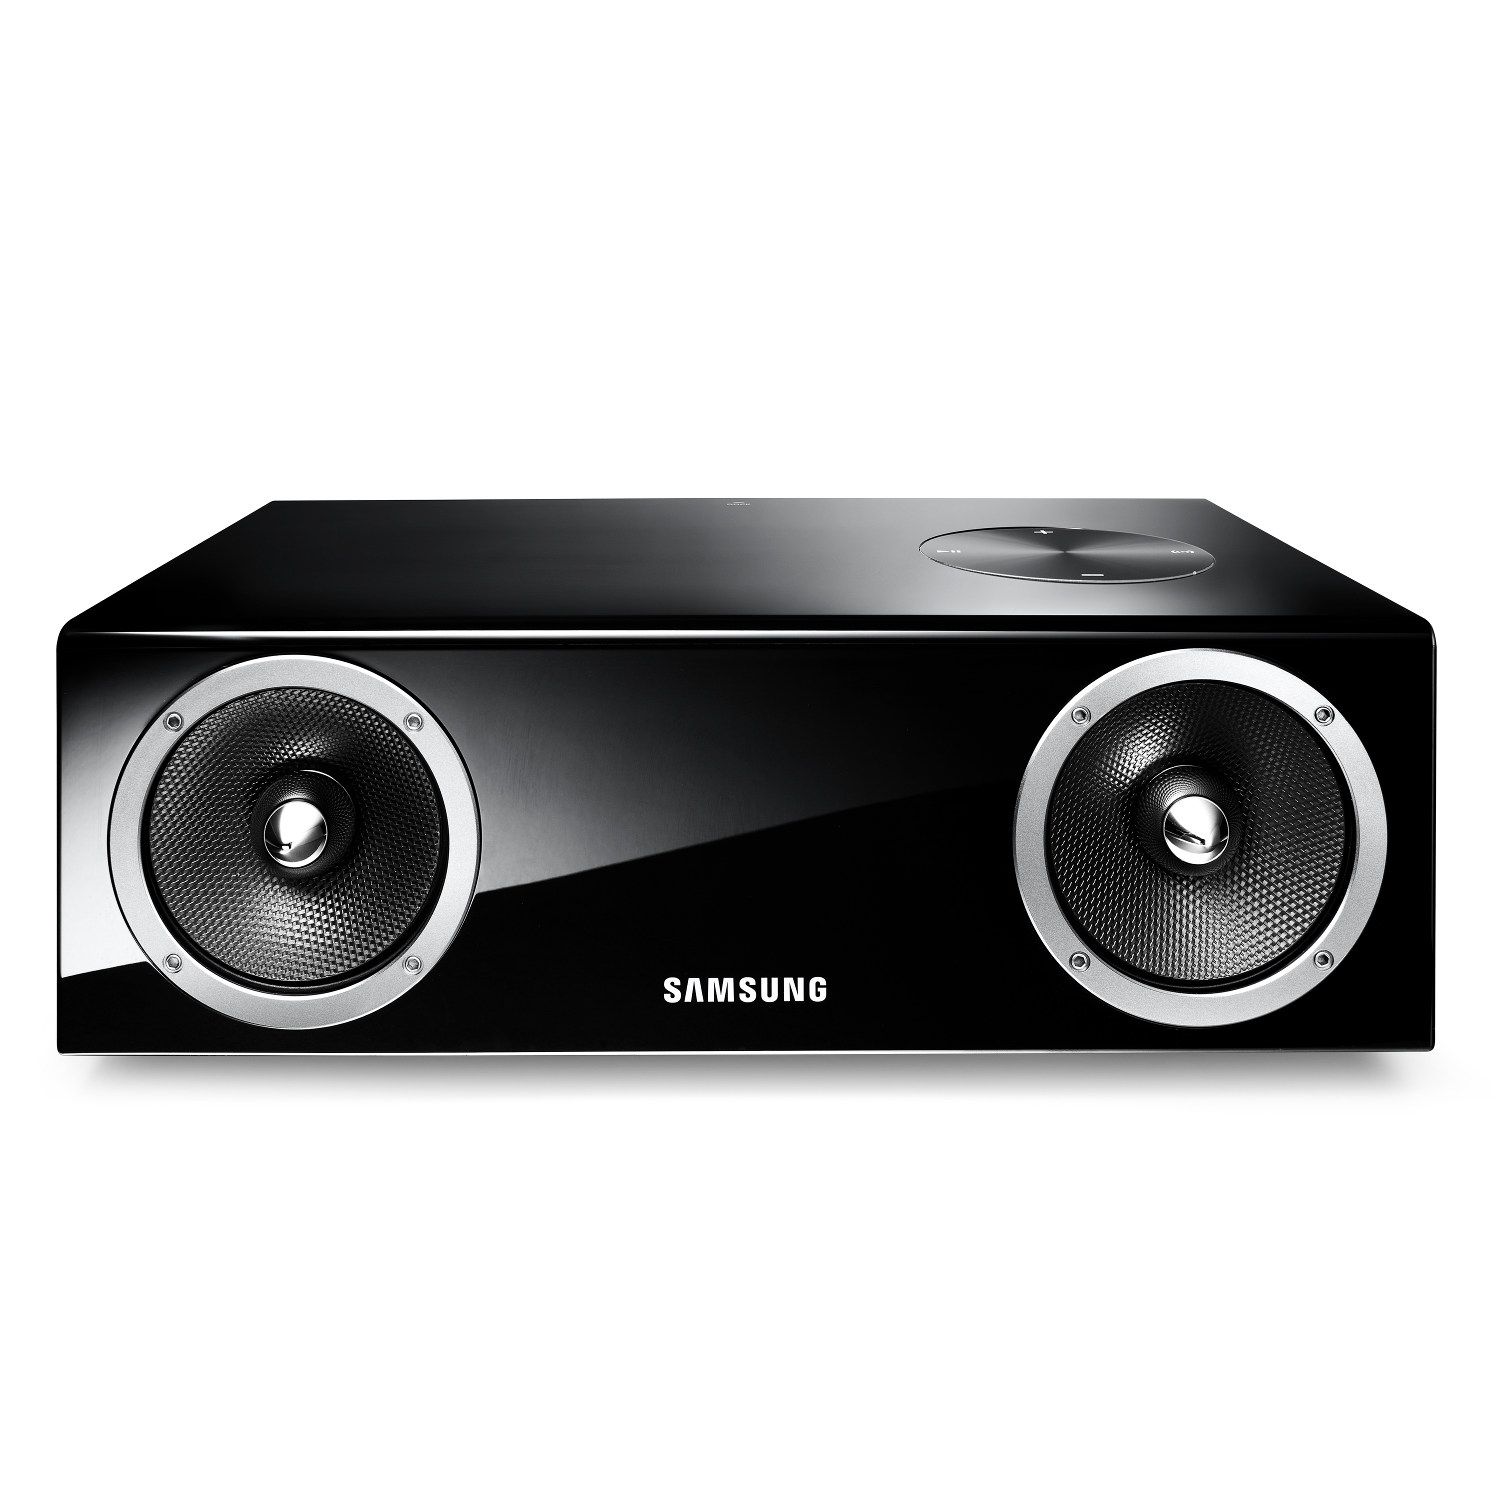 samsung da e570 dock enceinte bluetooth samsung sur ldlc. Black Bedroom Furniture Sets. Home Design Ideas